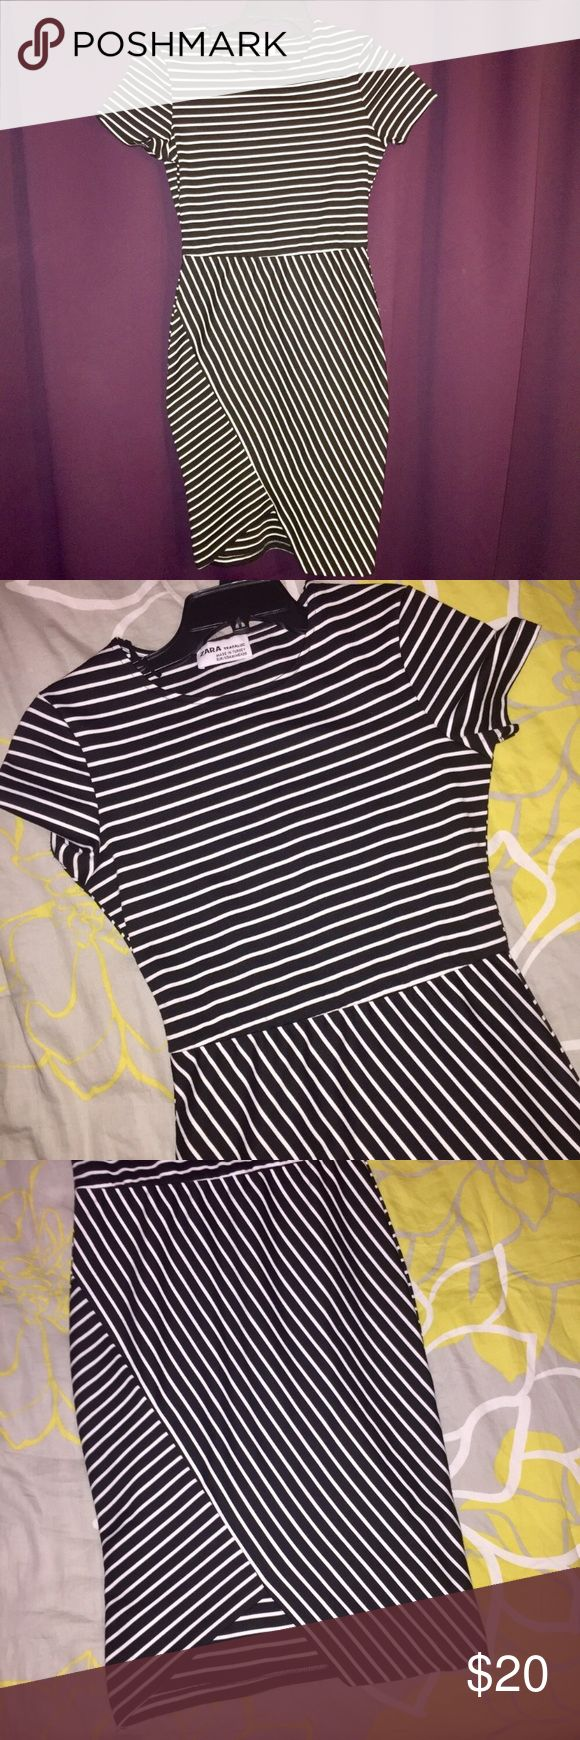 Black and white midi bodycon dress from Zara! Midi black and white bodycon dress with asymmetrical hem line at the bottom. Only worn once! Super classy and super flattering! Zara Dresses Midi